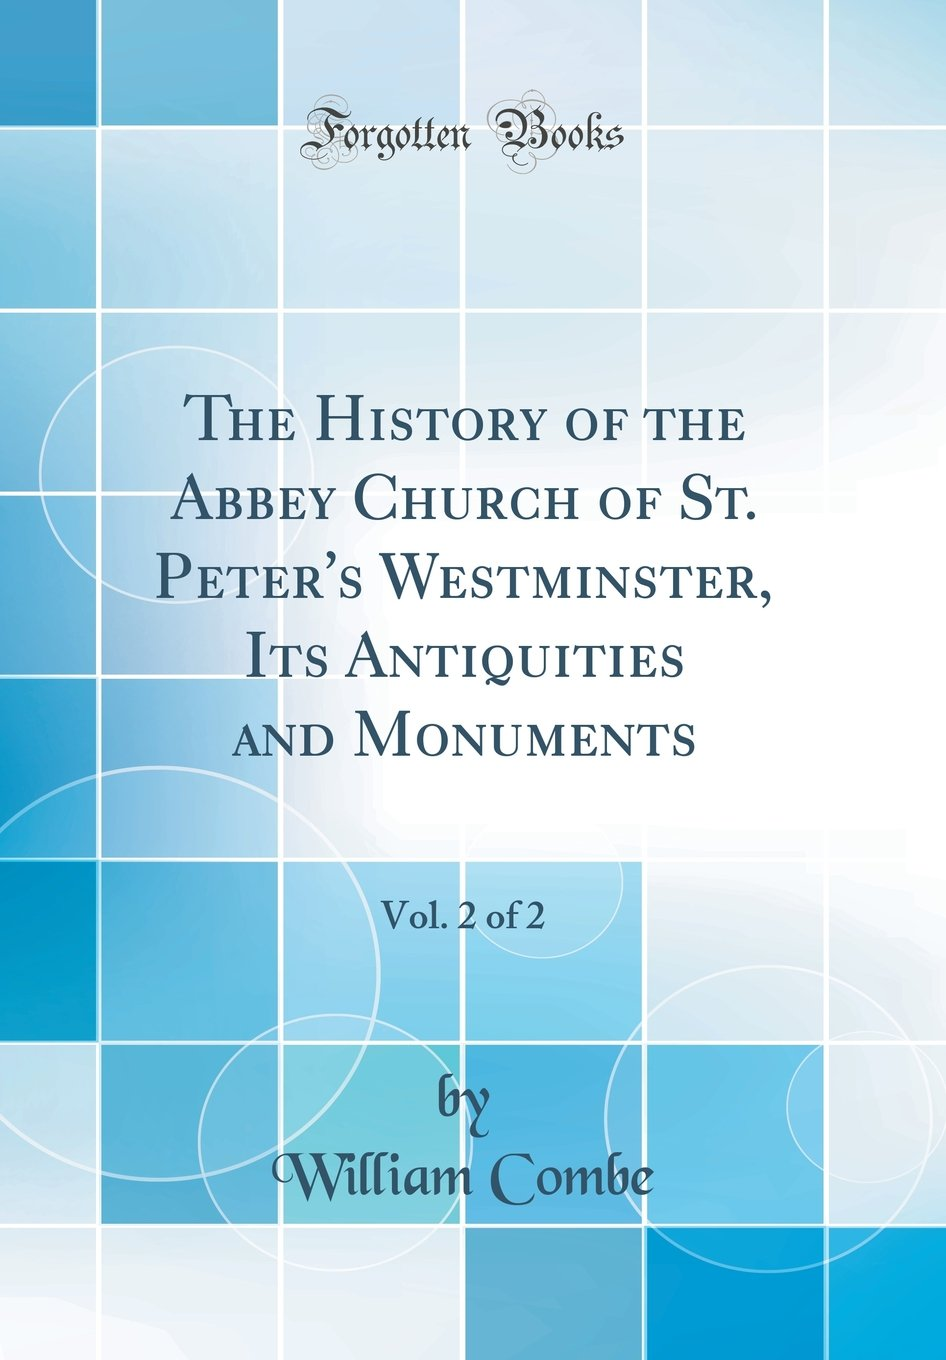 Download The History of the Abbey Church of St. Peter's Westminster, Its Antiquities and Monuments, Vol. 2 of 2 (Classic Reprint) ebook